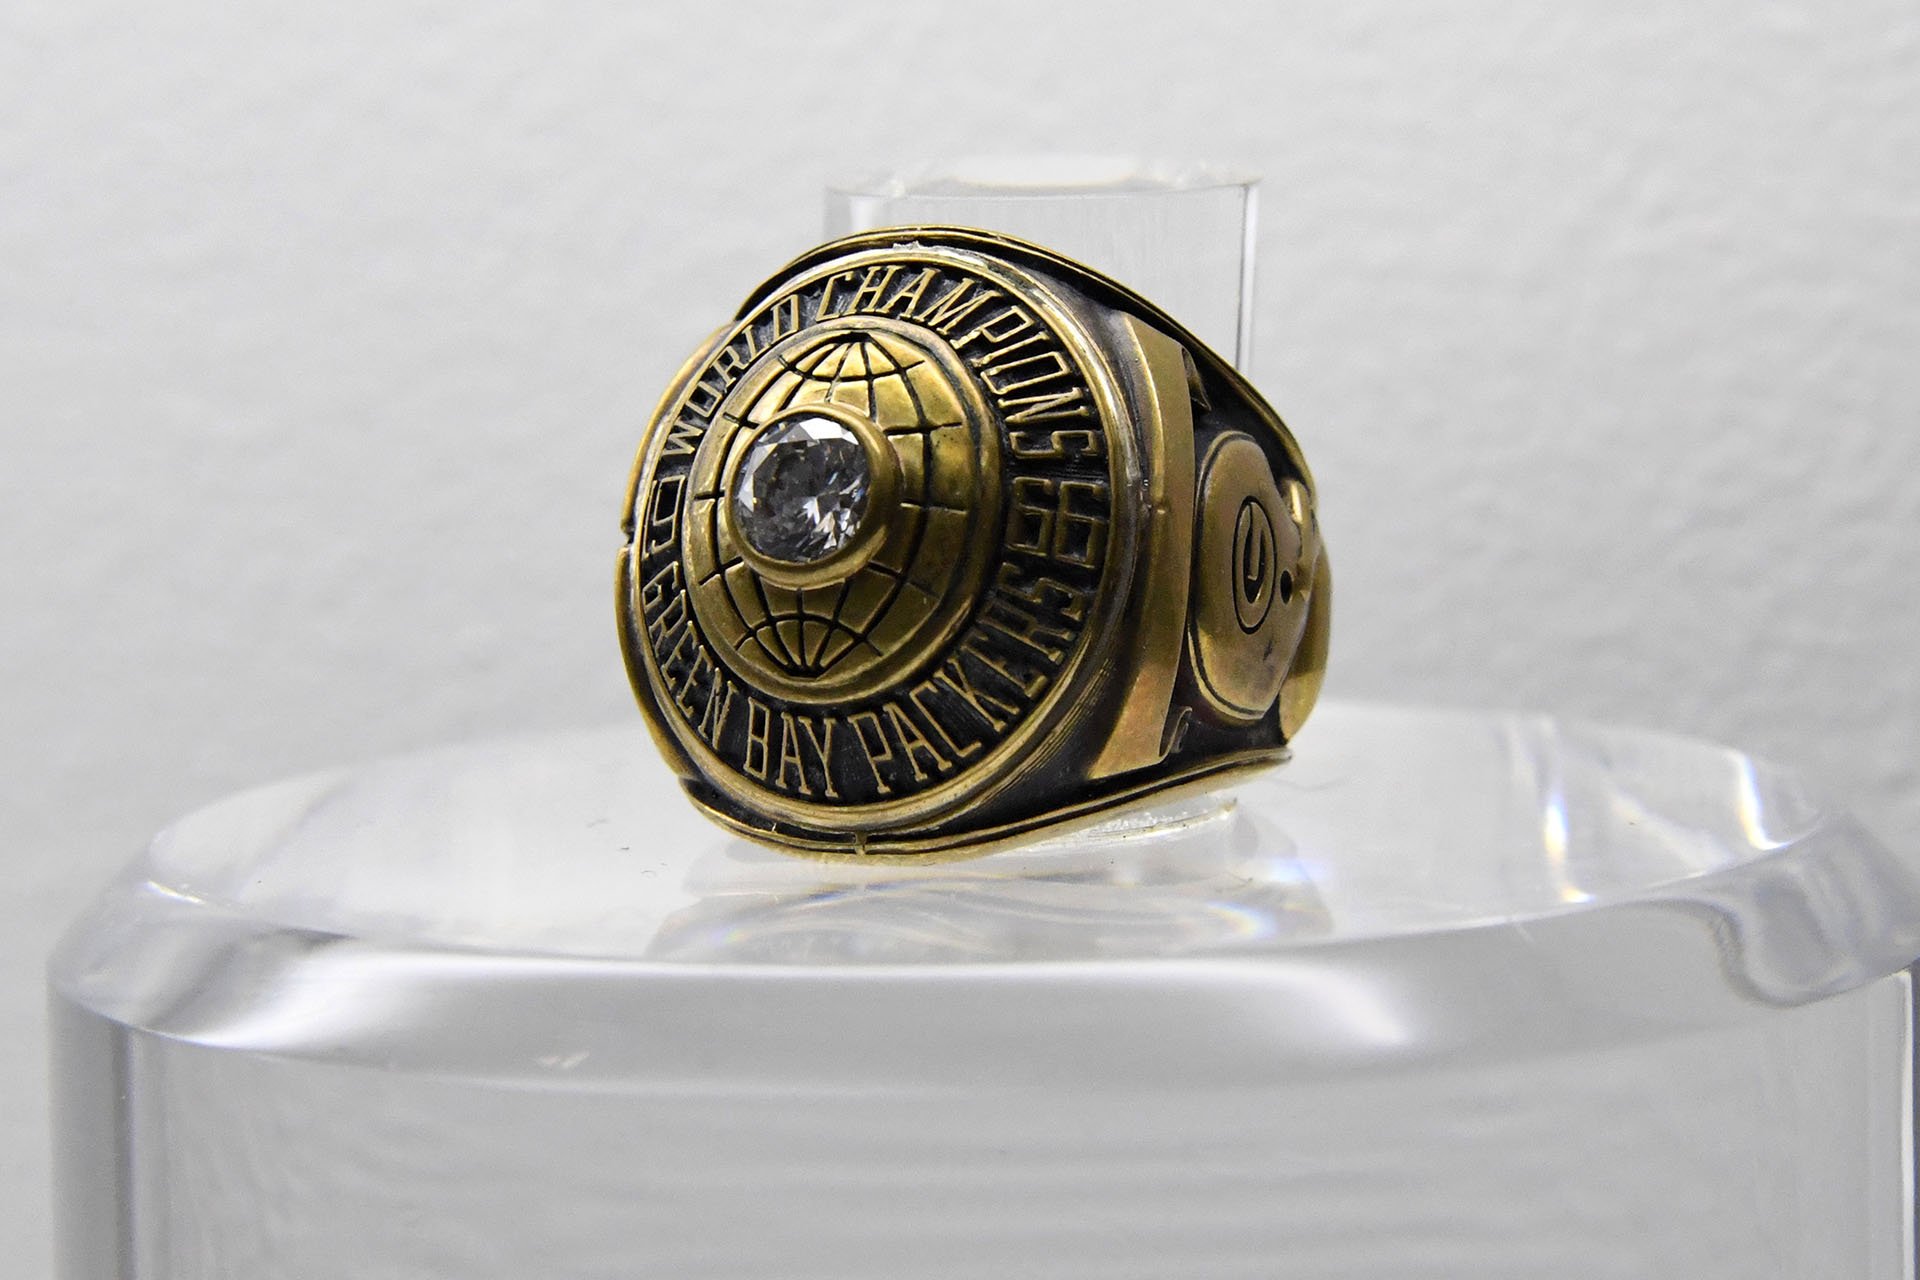 El anillo del Super Bowl I (1967), donde los Green Bay Packers vencieron 35-10 a Kansas City Chiefs en Los Angeles